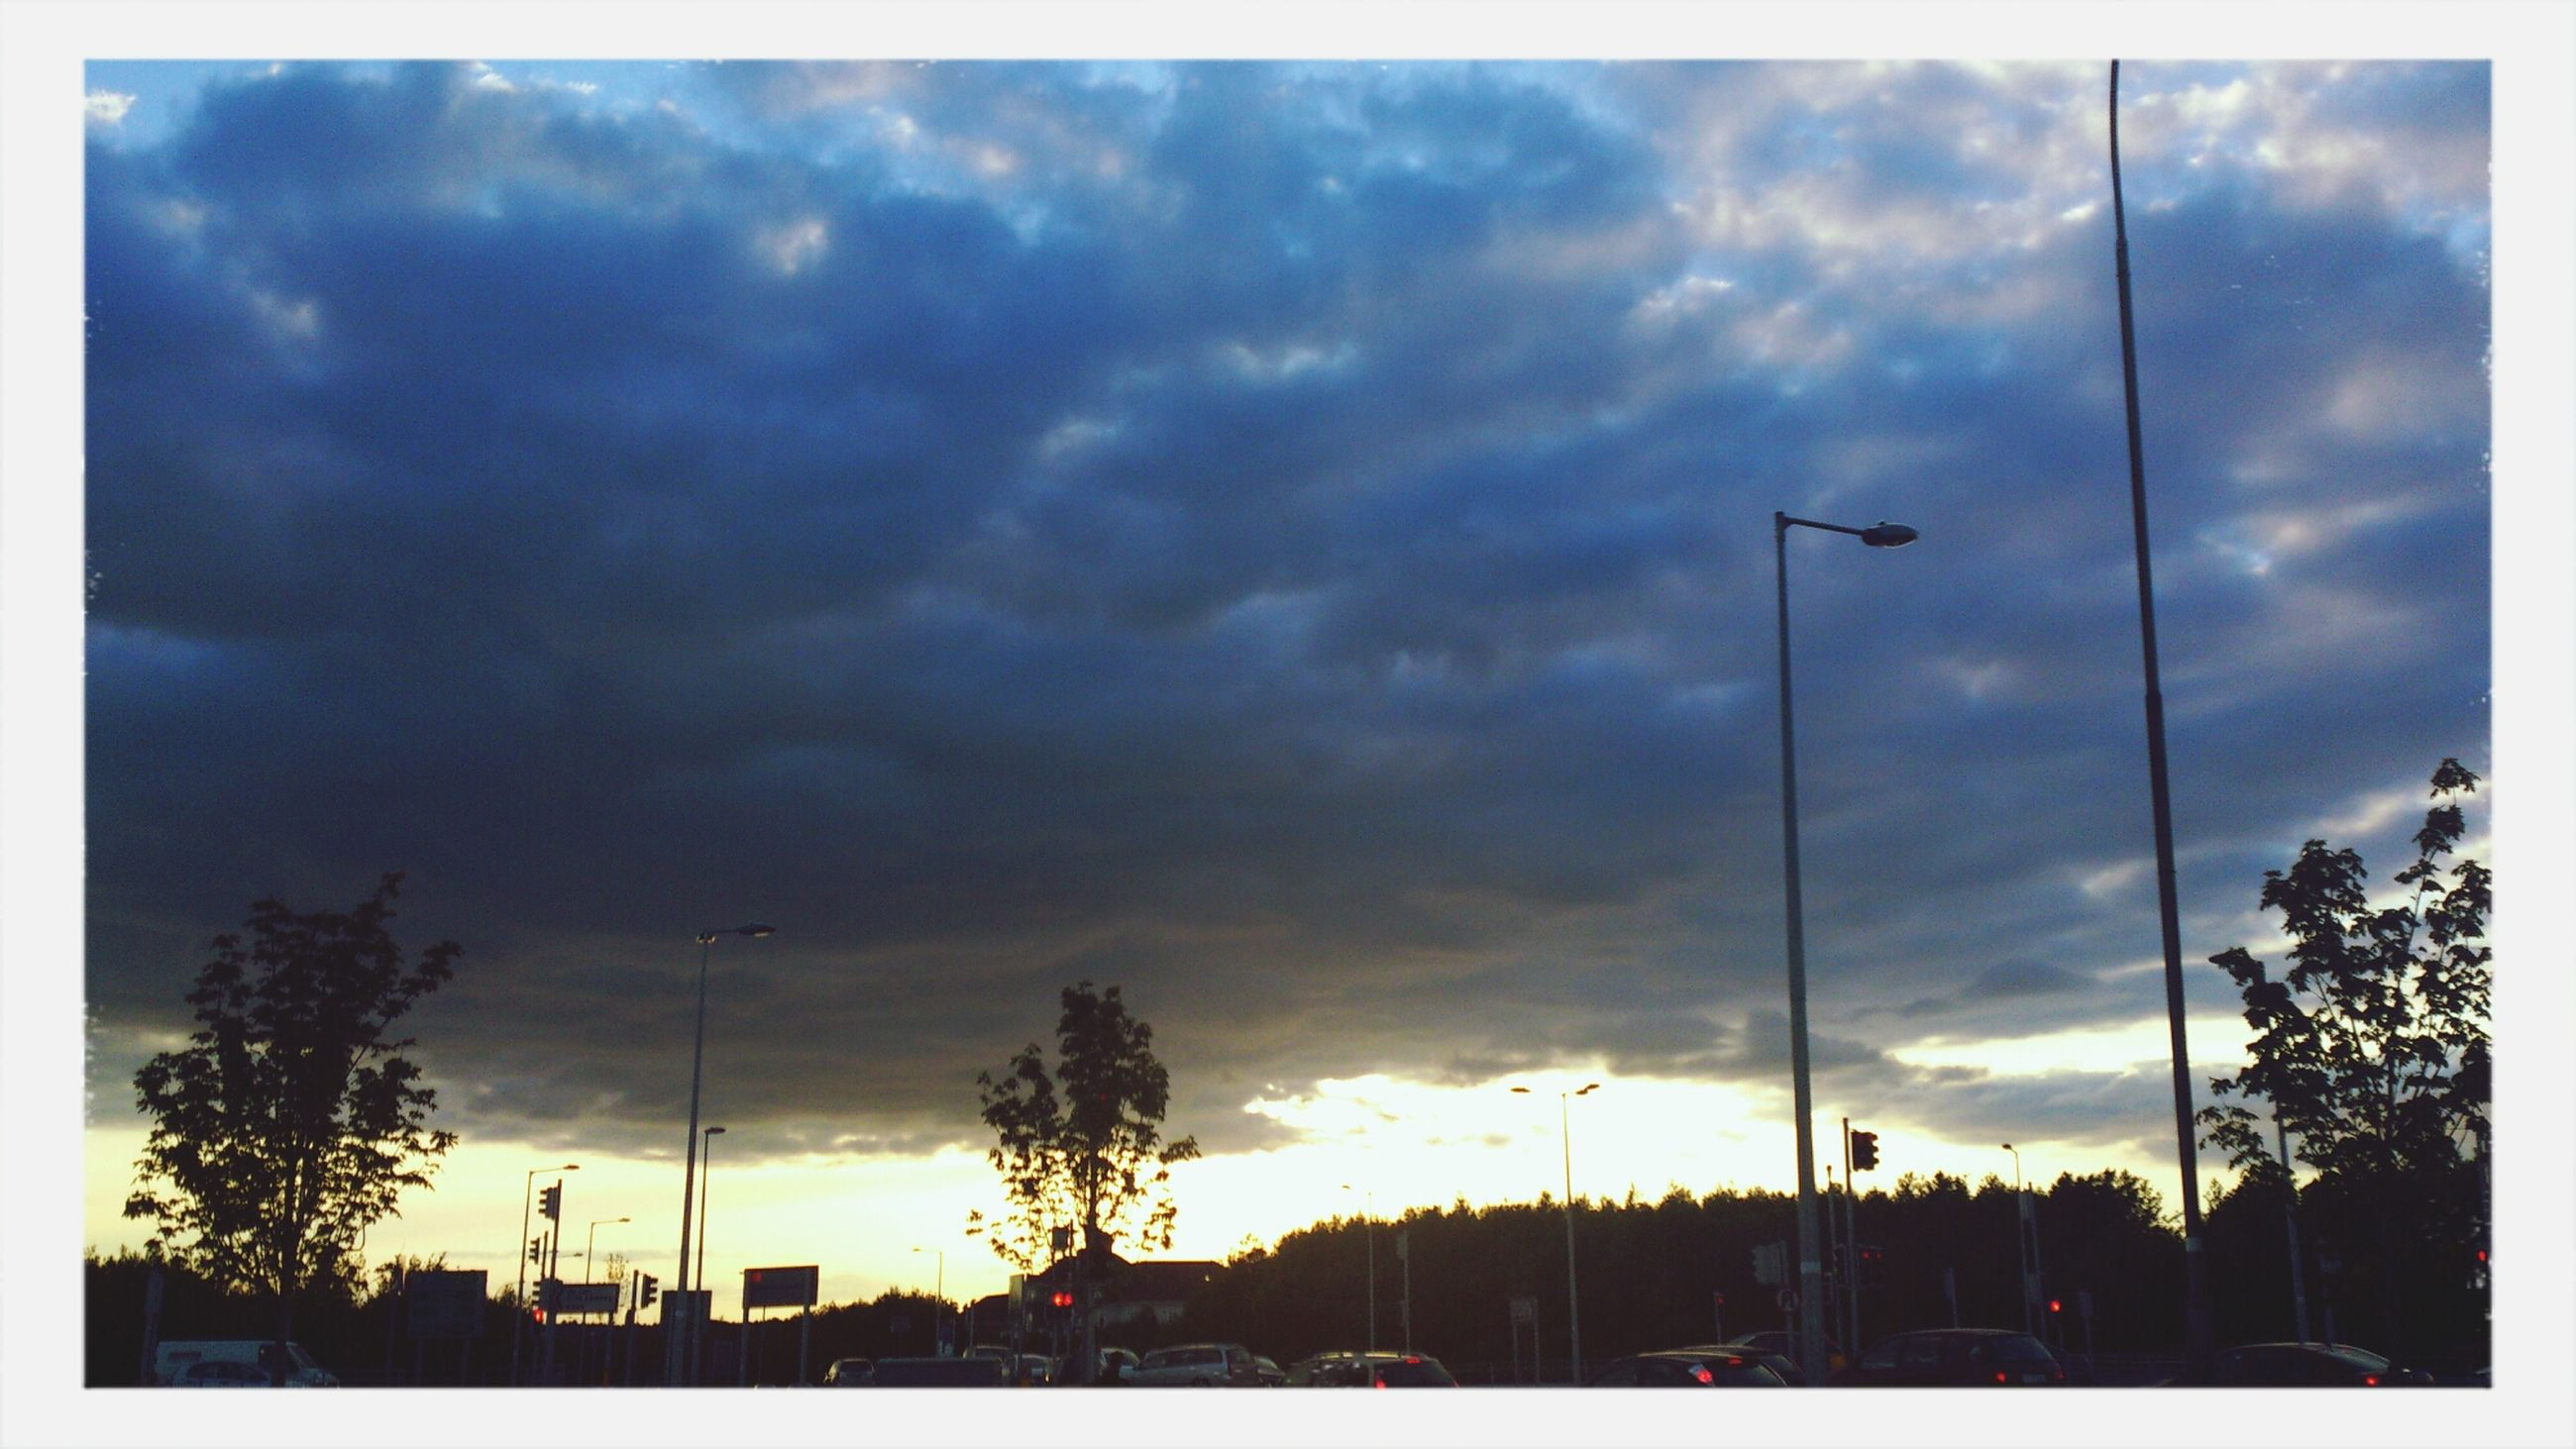 sky, transfer print, cloud - sky, silhouette, tree, cloudy, building exterior, auto post production filter, low angle view, built structure, cloud, architecture, street light, overcast, weather, dusk, sunset, outdoors, nature, city